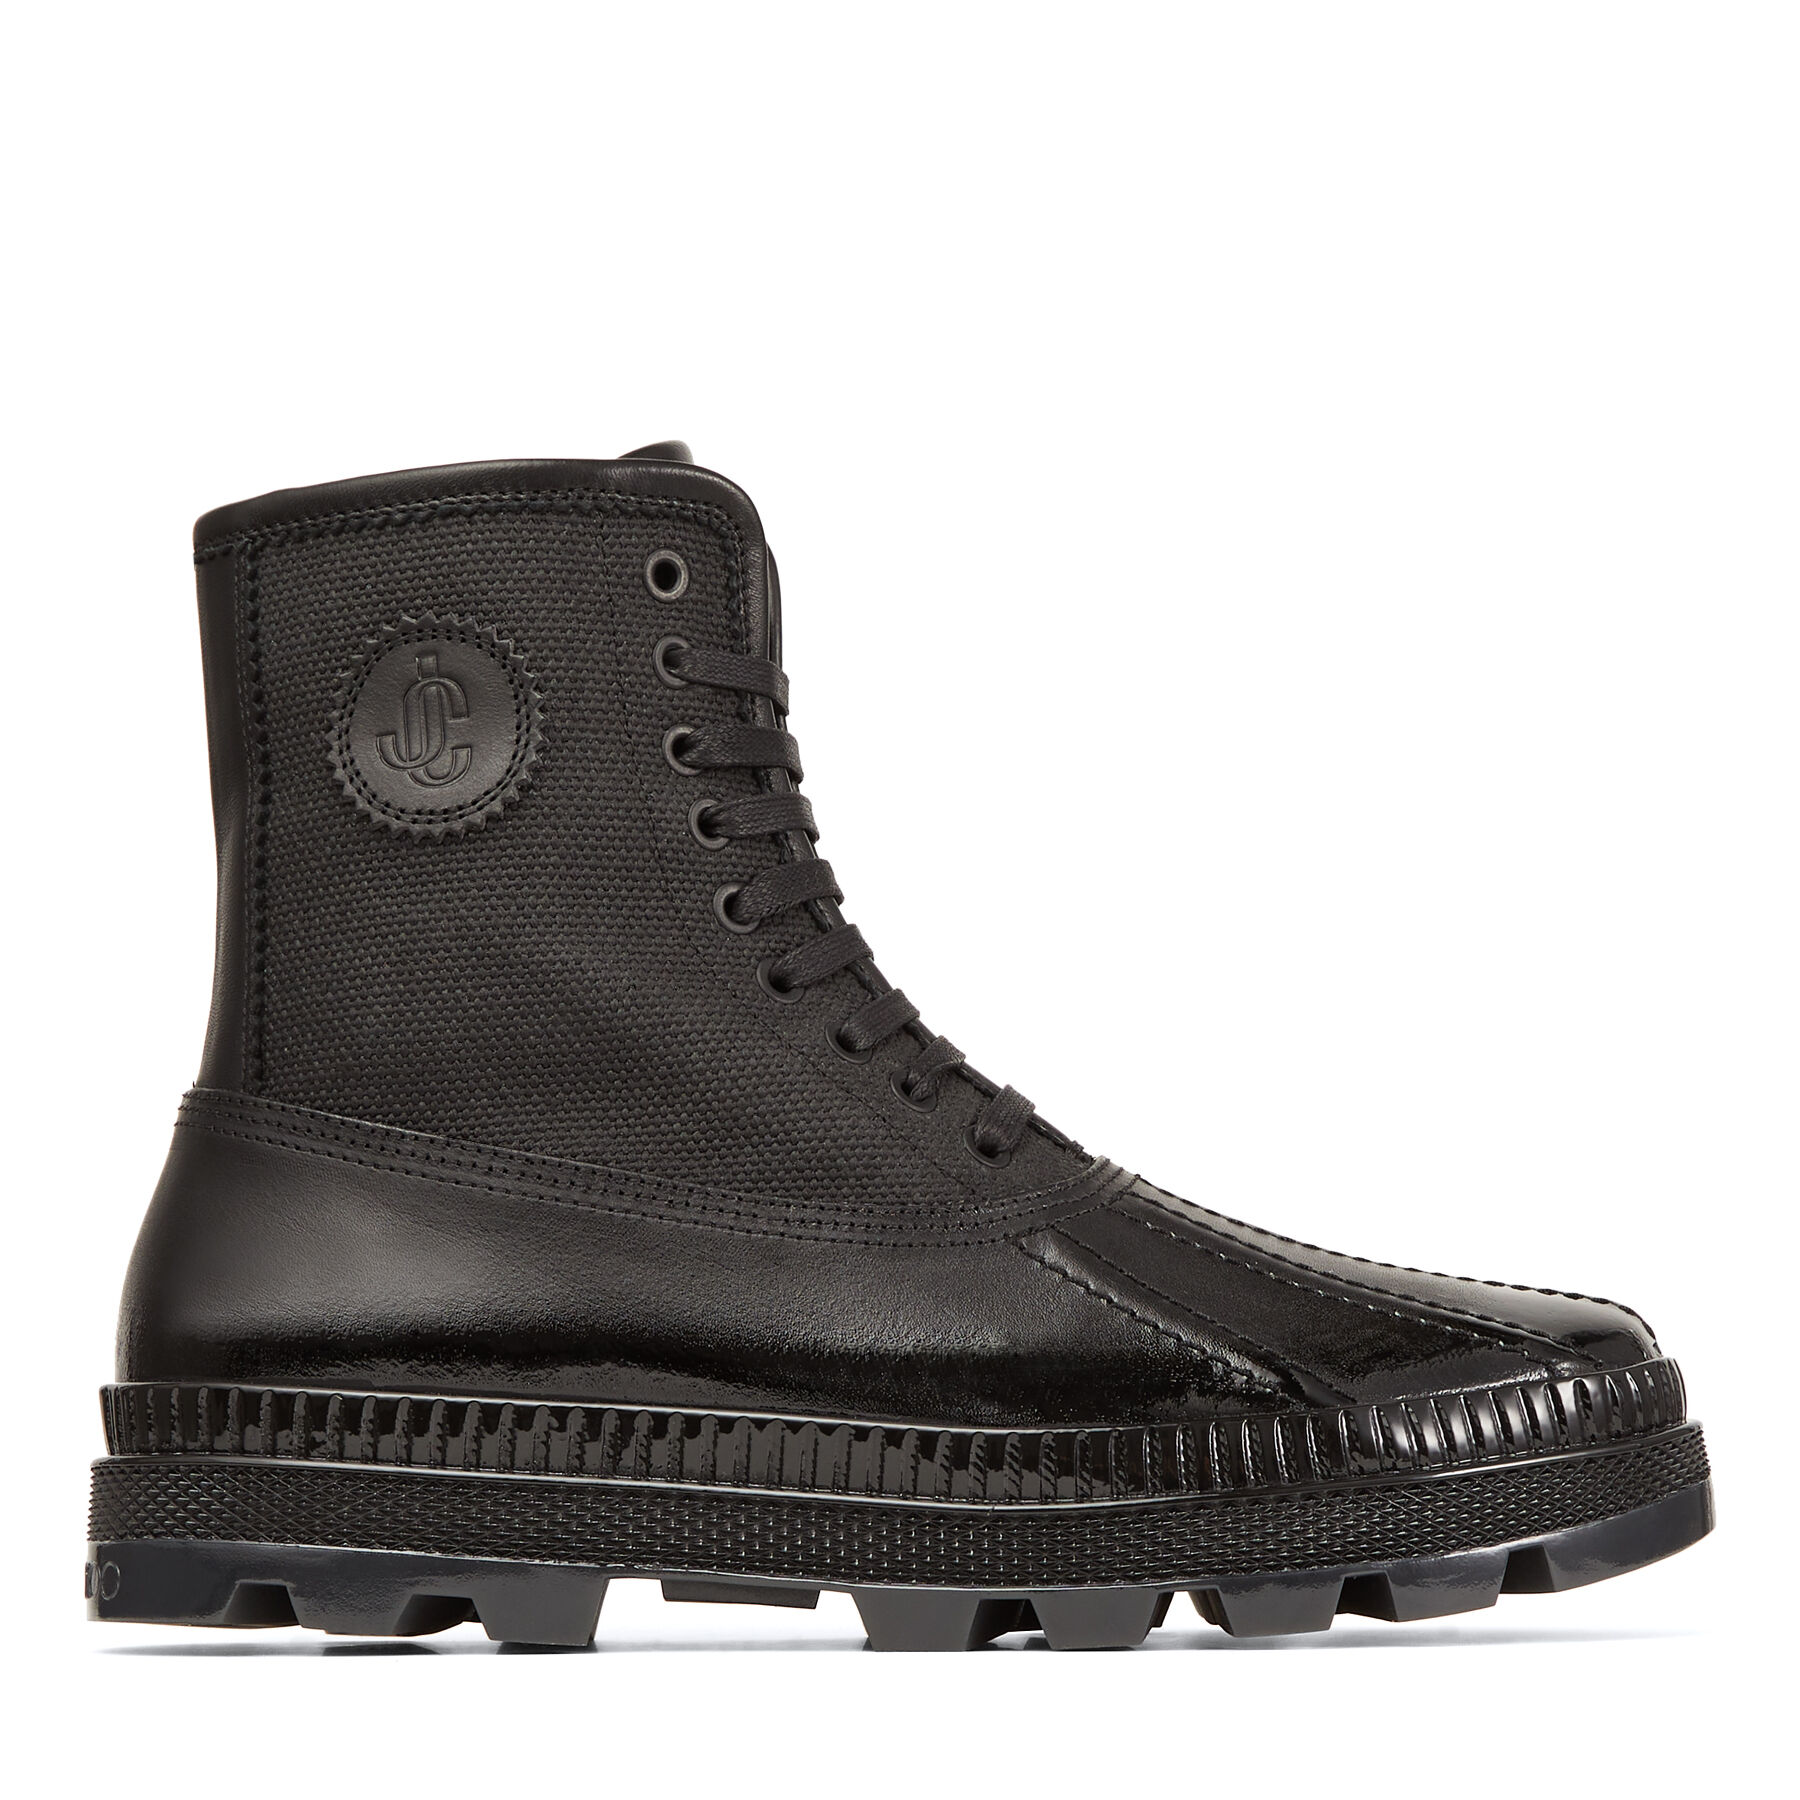 OSKAR/M - Black Vachetta and Waxed Canvas Duck Boots with Lacquered Finish